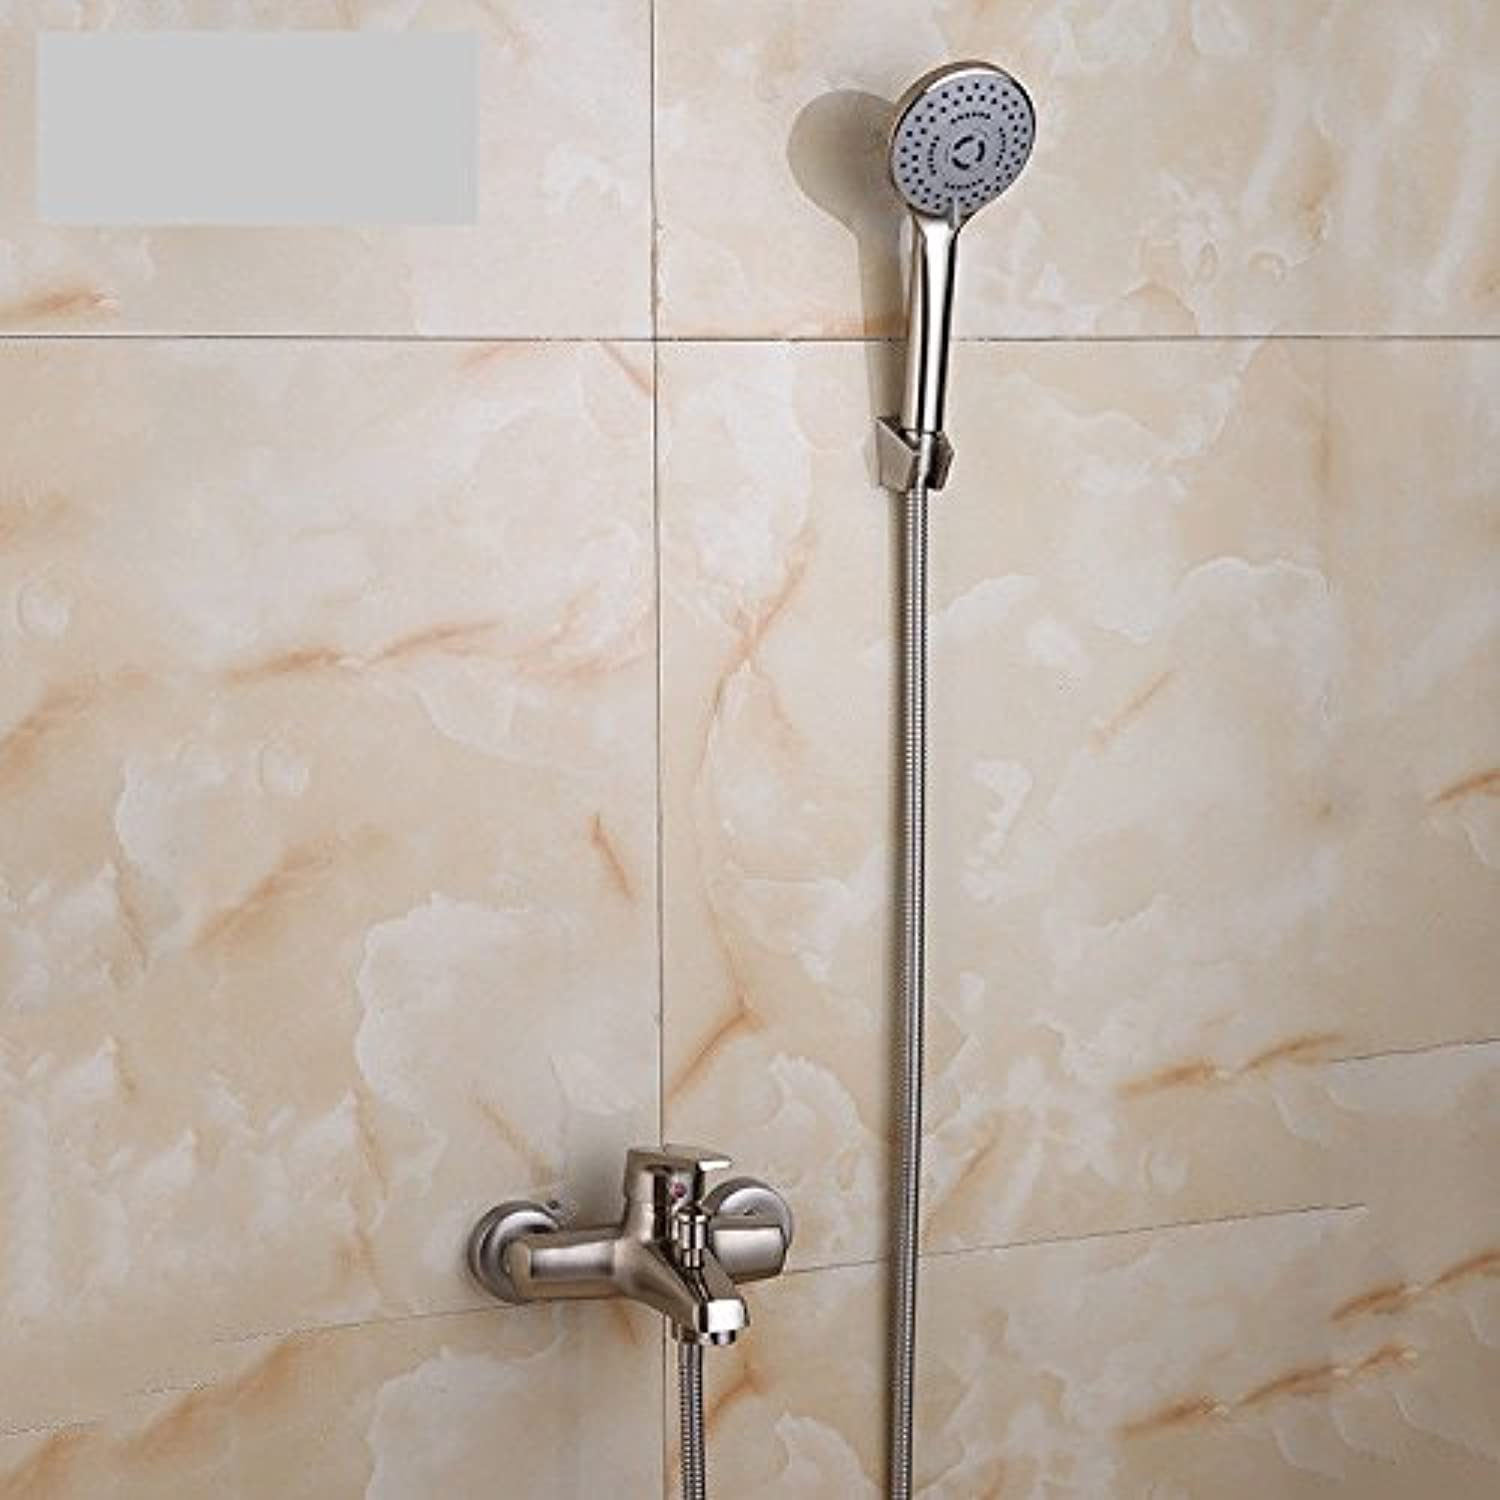 Lalaky Taps Faucet Kitchen Mixer Sink Waterfall Bathroom Mixer Basin Mixer Tap for Kitchen Bathroom and Washroom Shower Copper Shifting Nozzle Smart Shower